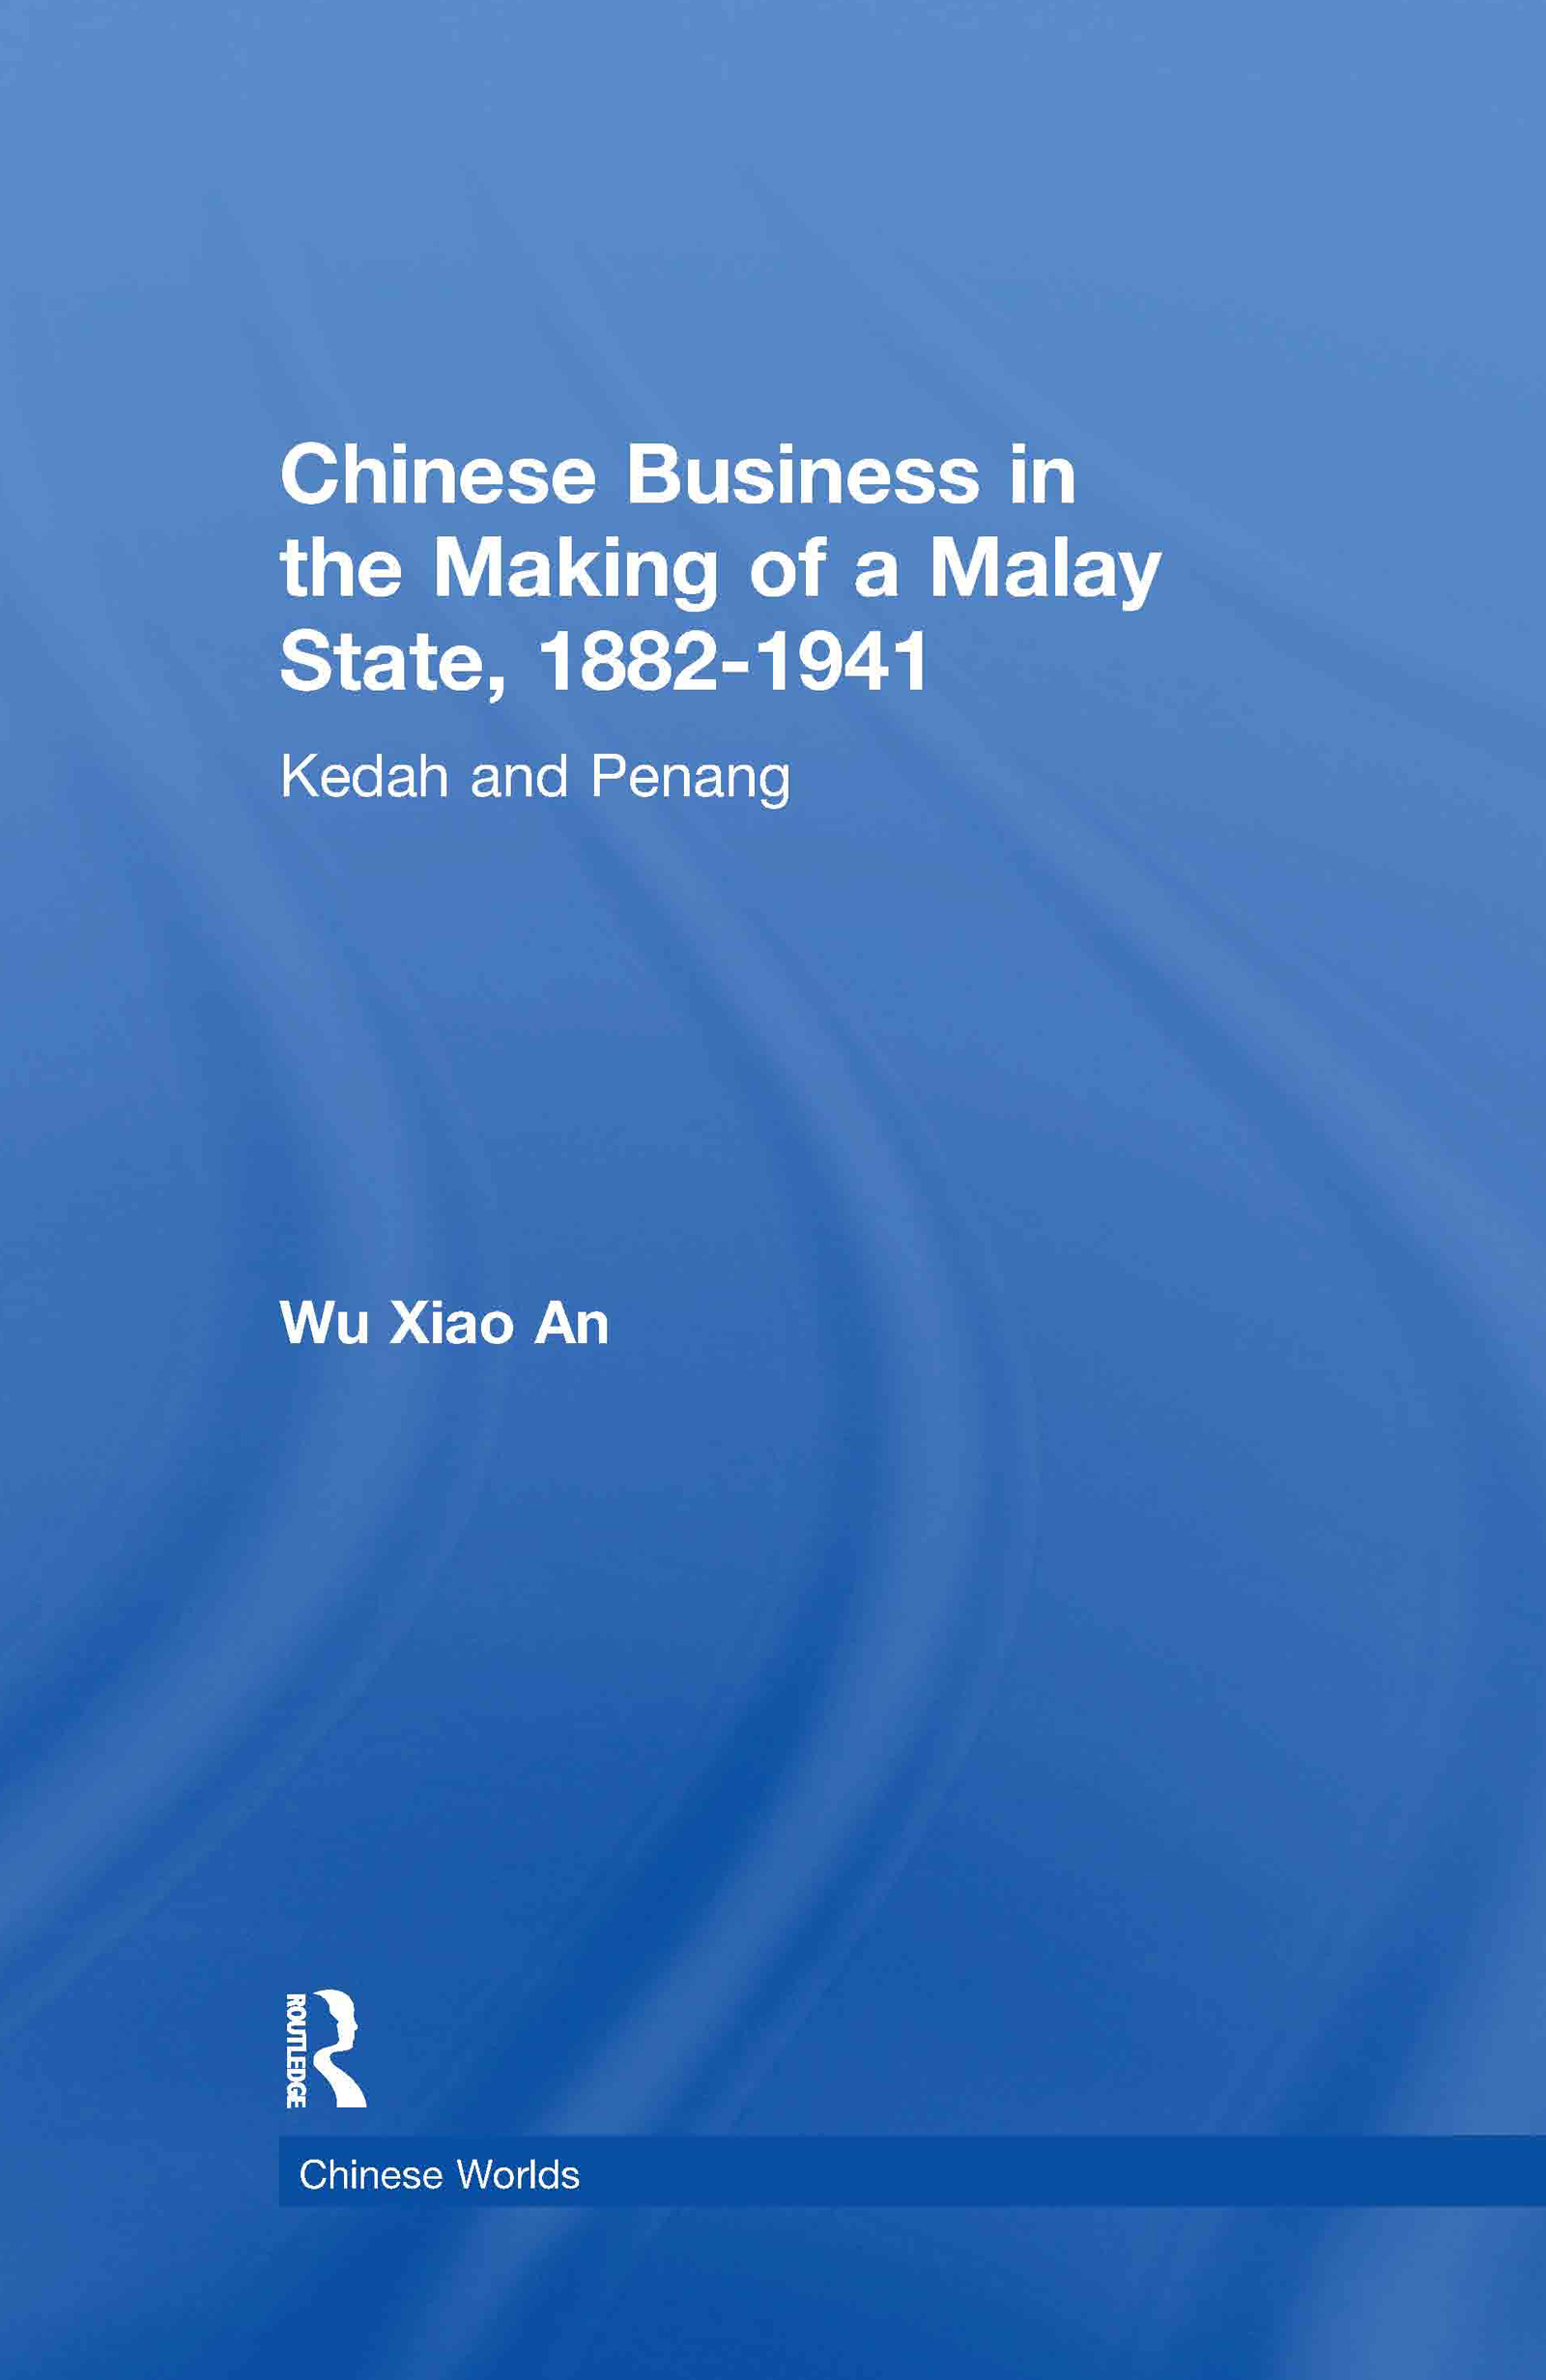 Chinese Business in the Making of a Malay State, 1882-1941: Kedah and Penang book cover